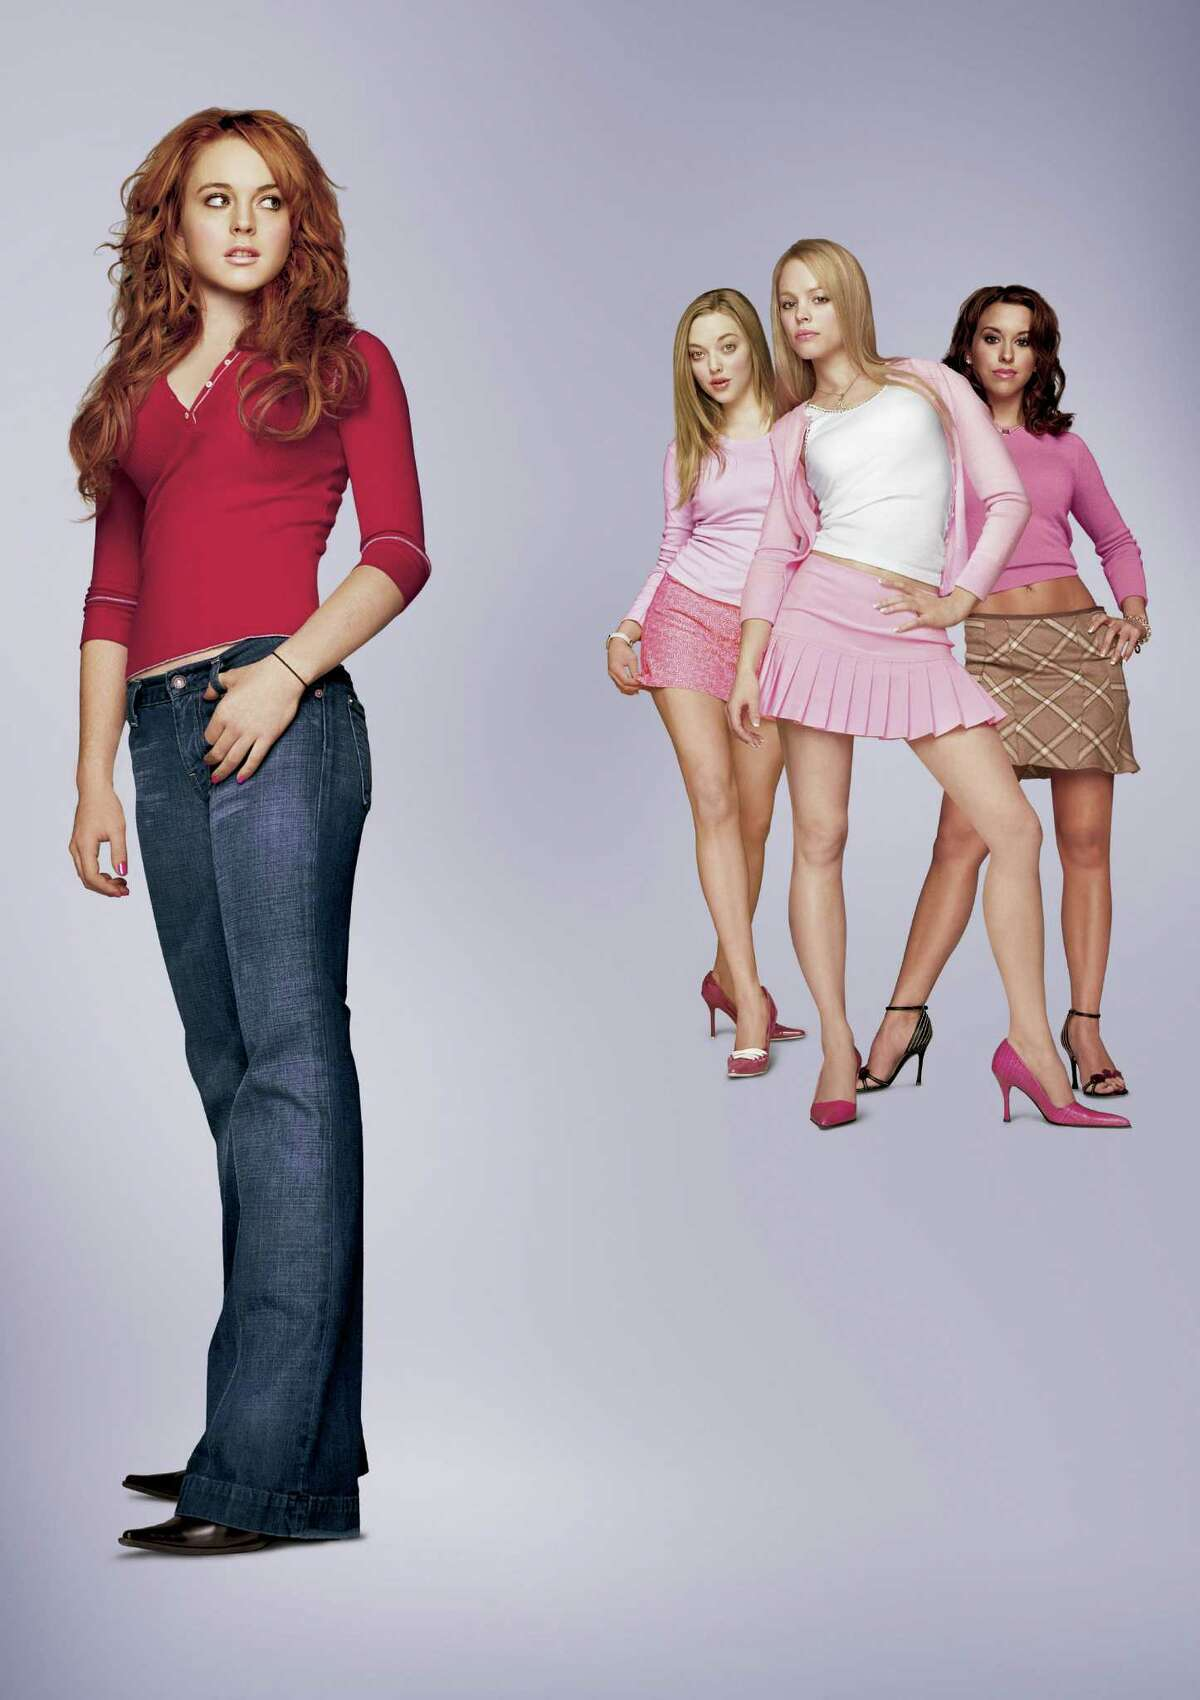 """American teen comedy """"Mean Girls"""" debuted in theaters in April 2014. See what the cast looks like now."""